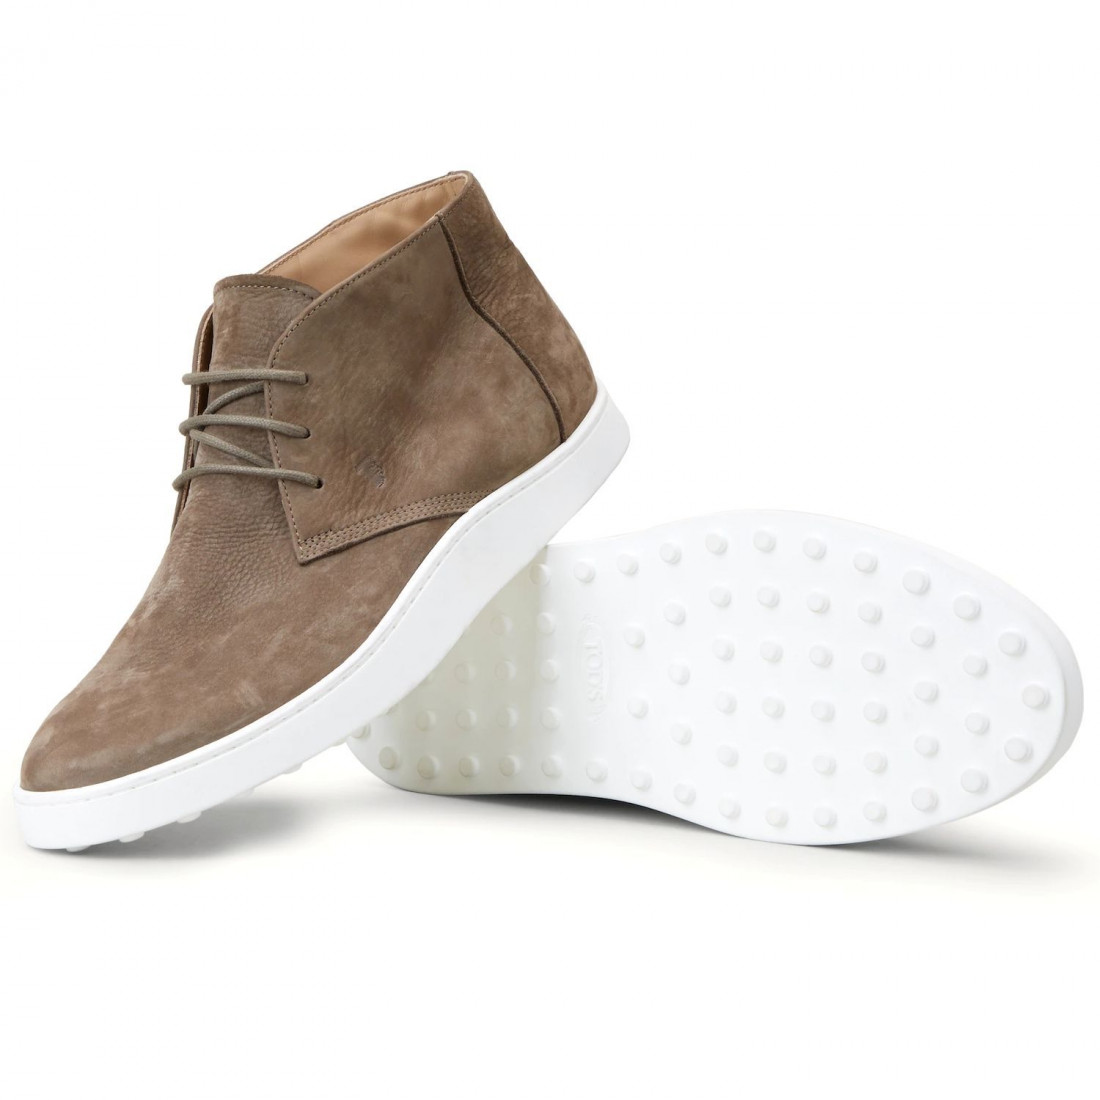 lace up ankle boots man tods xxm52b0aw506rns413 6646